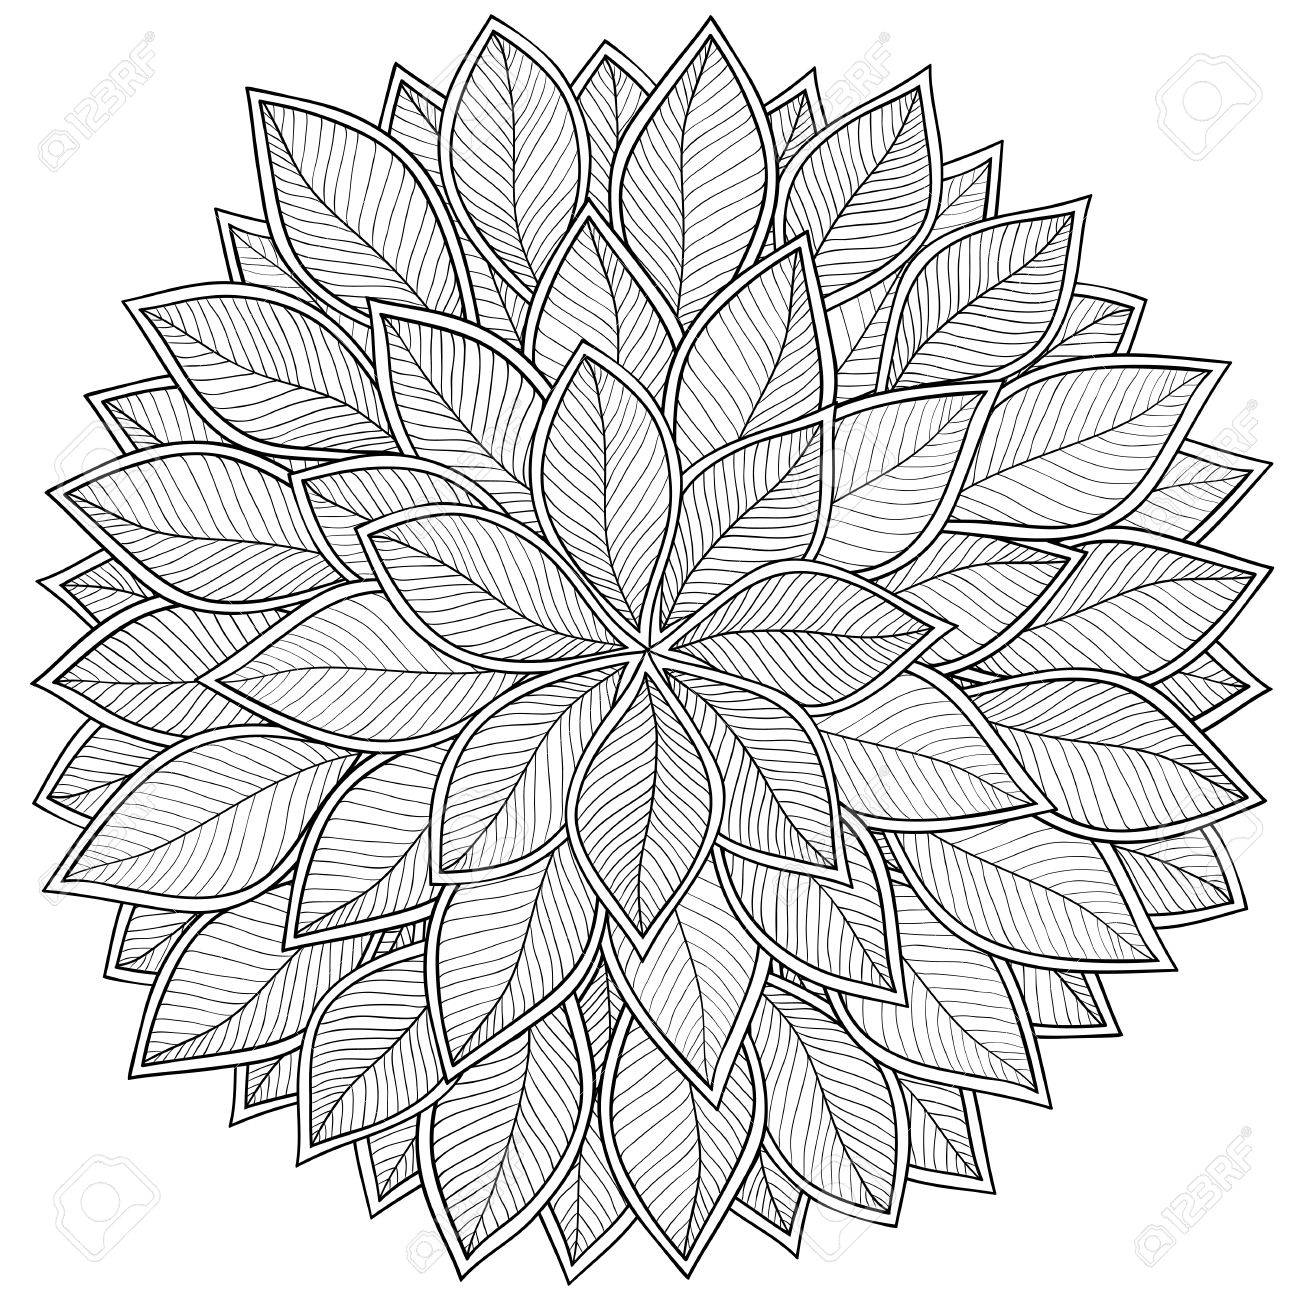 Pattern For Coloring Book. Leaves. Ethnic, Floral, Retro, Doodle ...